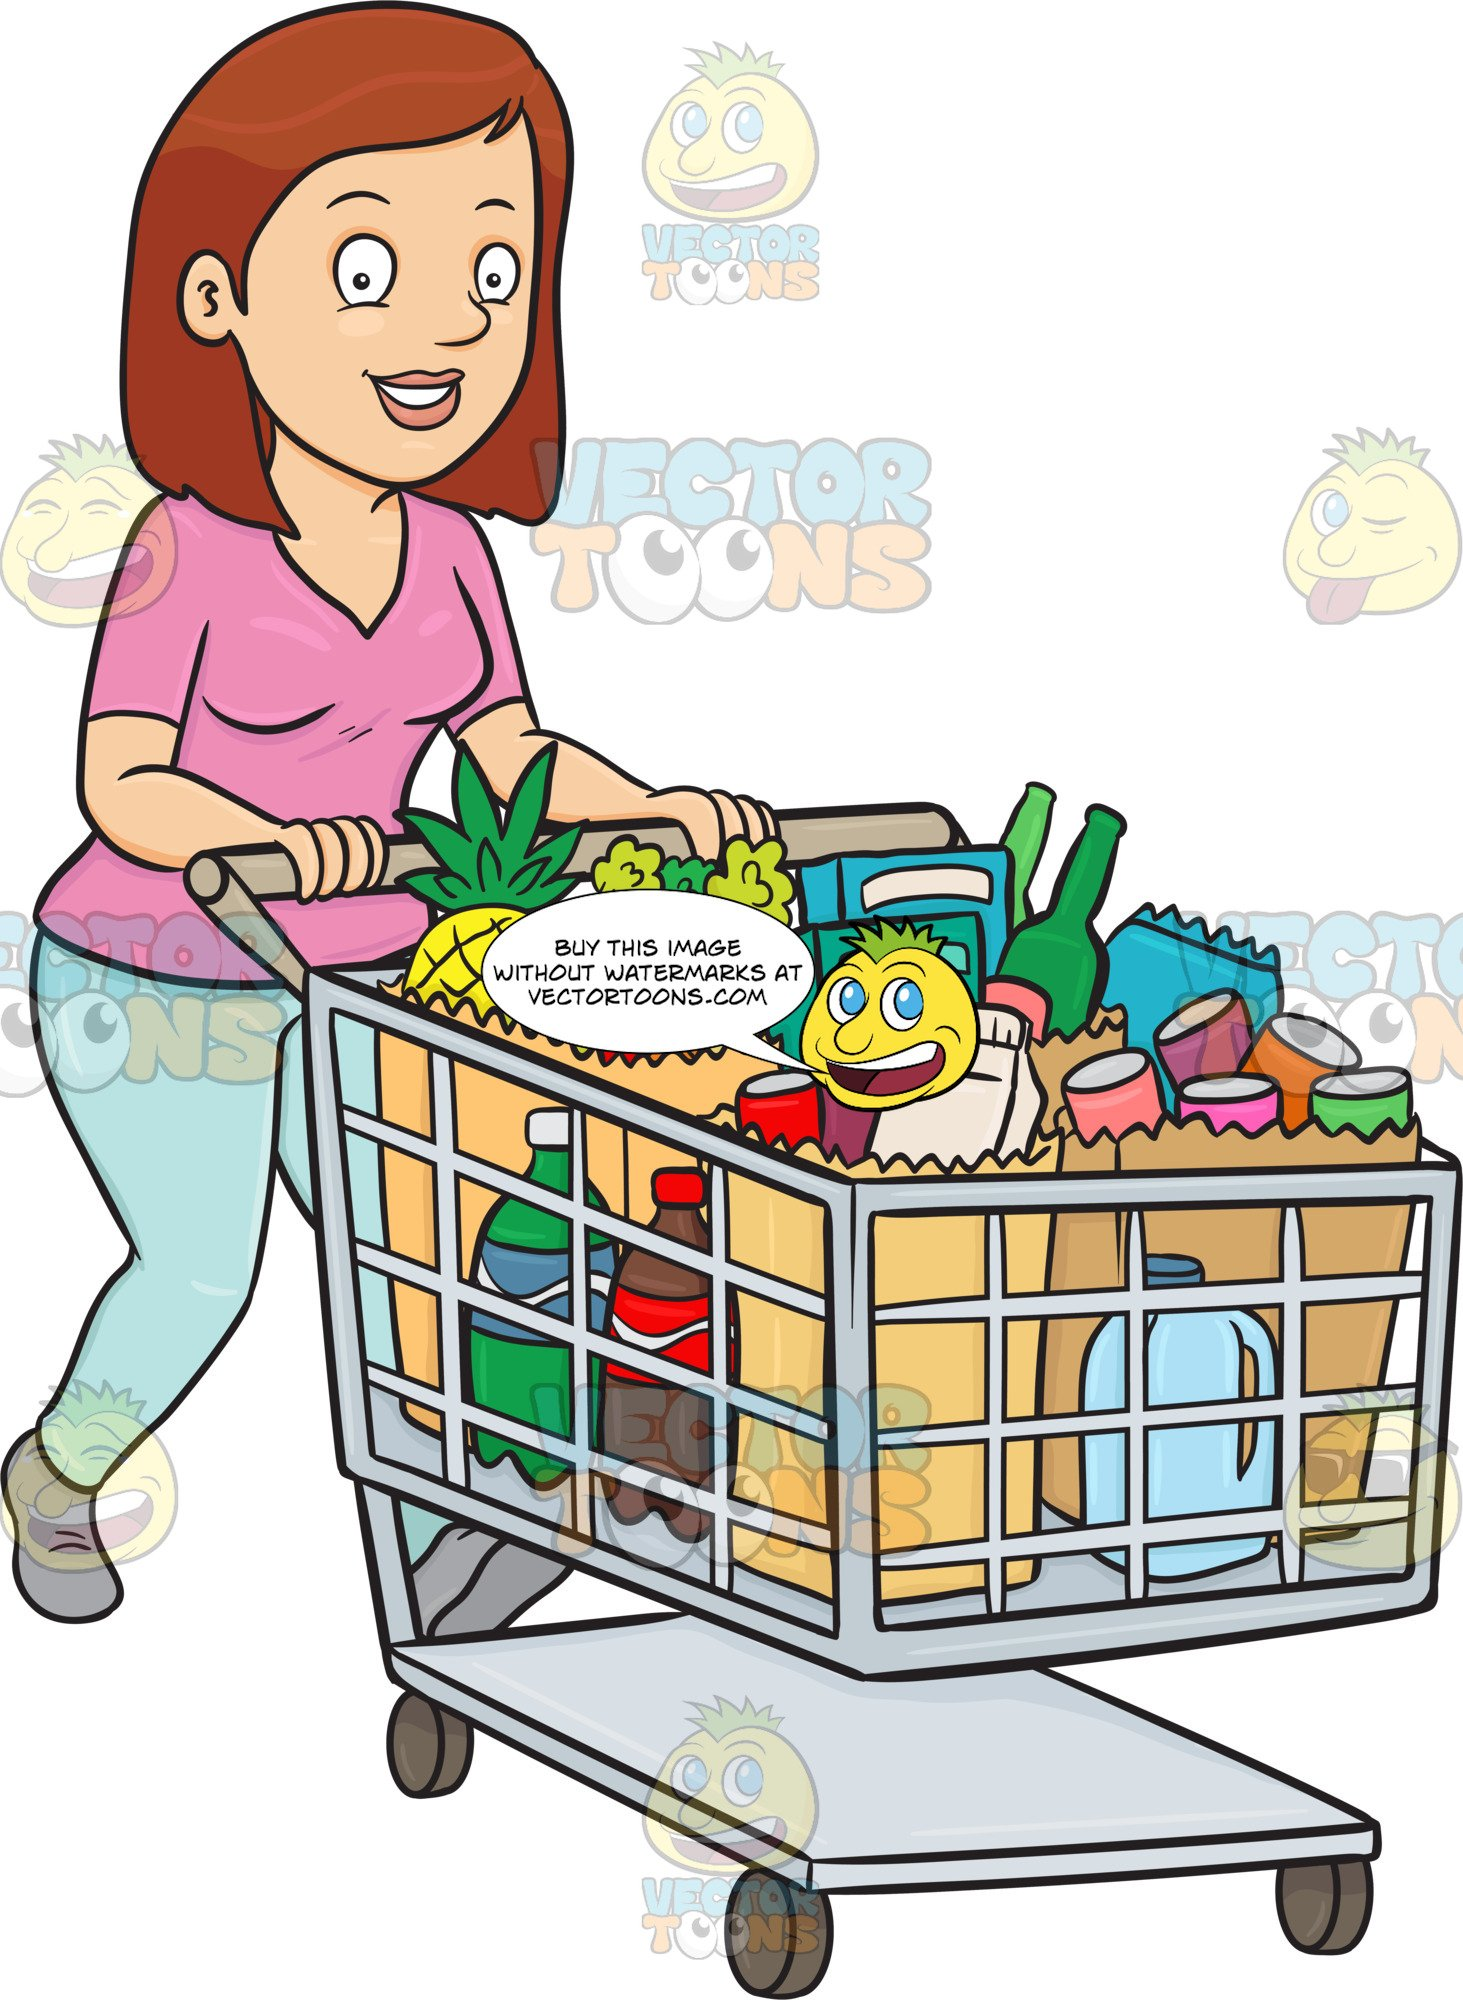 A Woman Smiles After Checking Out At The Supermarket With Her Grocery Items.